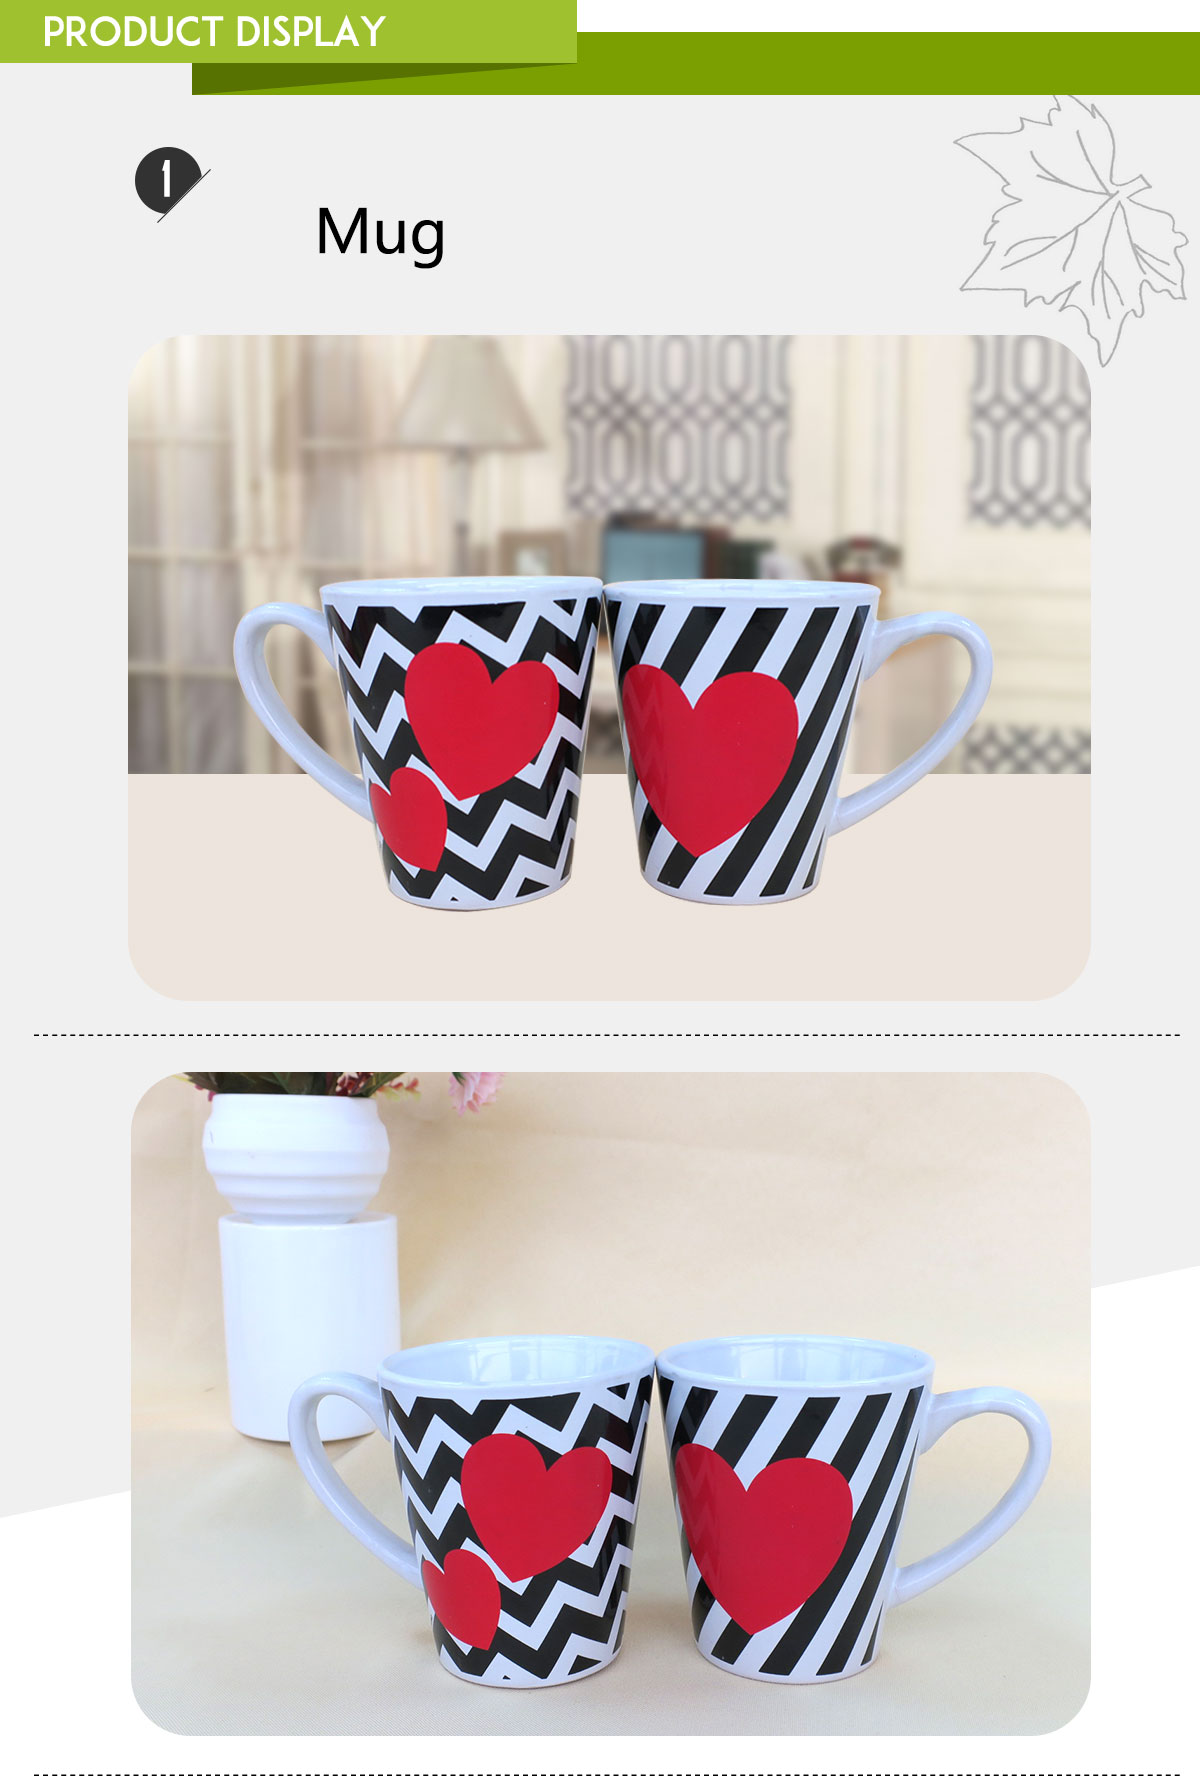 Beautiful ceramic coffee cups paint mug with heart shaped design for promotion